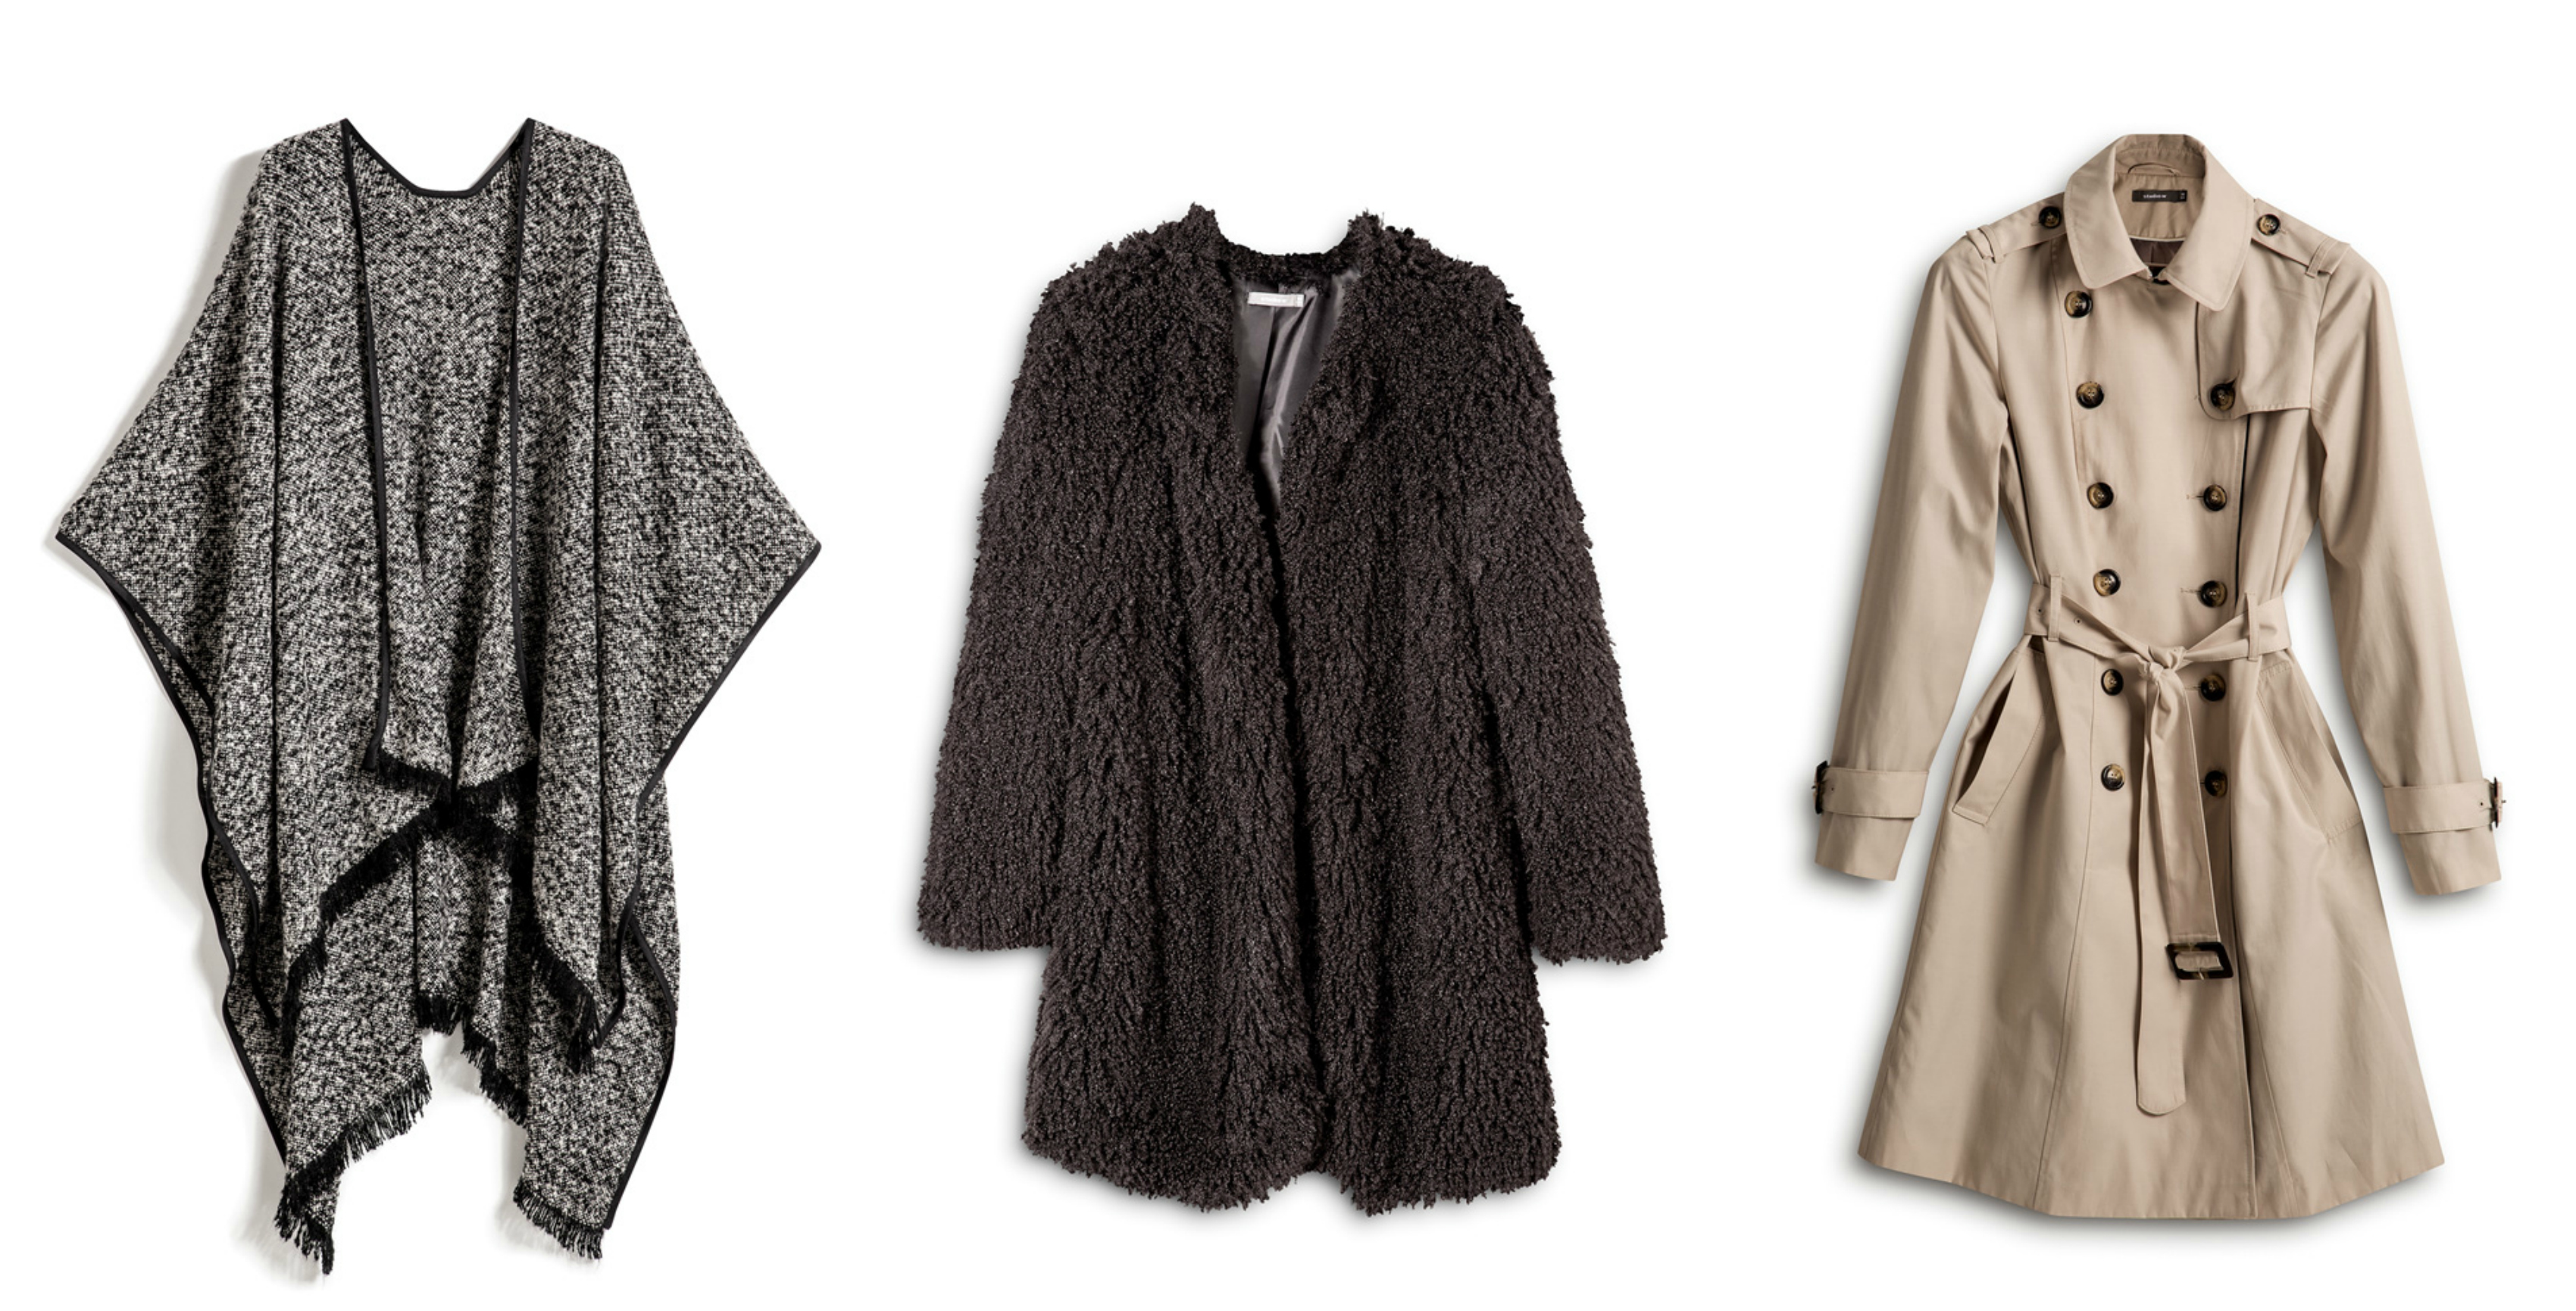 woolworths mother's day 2015 fashion